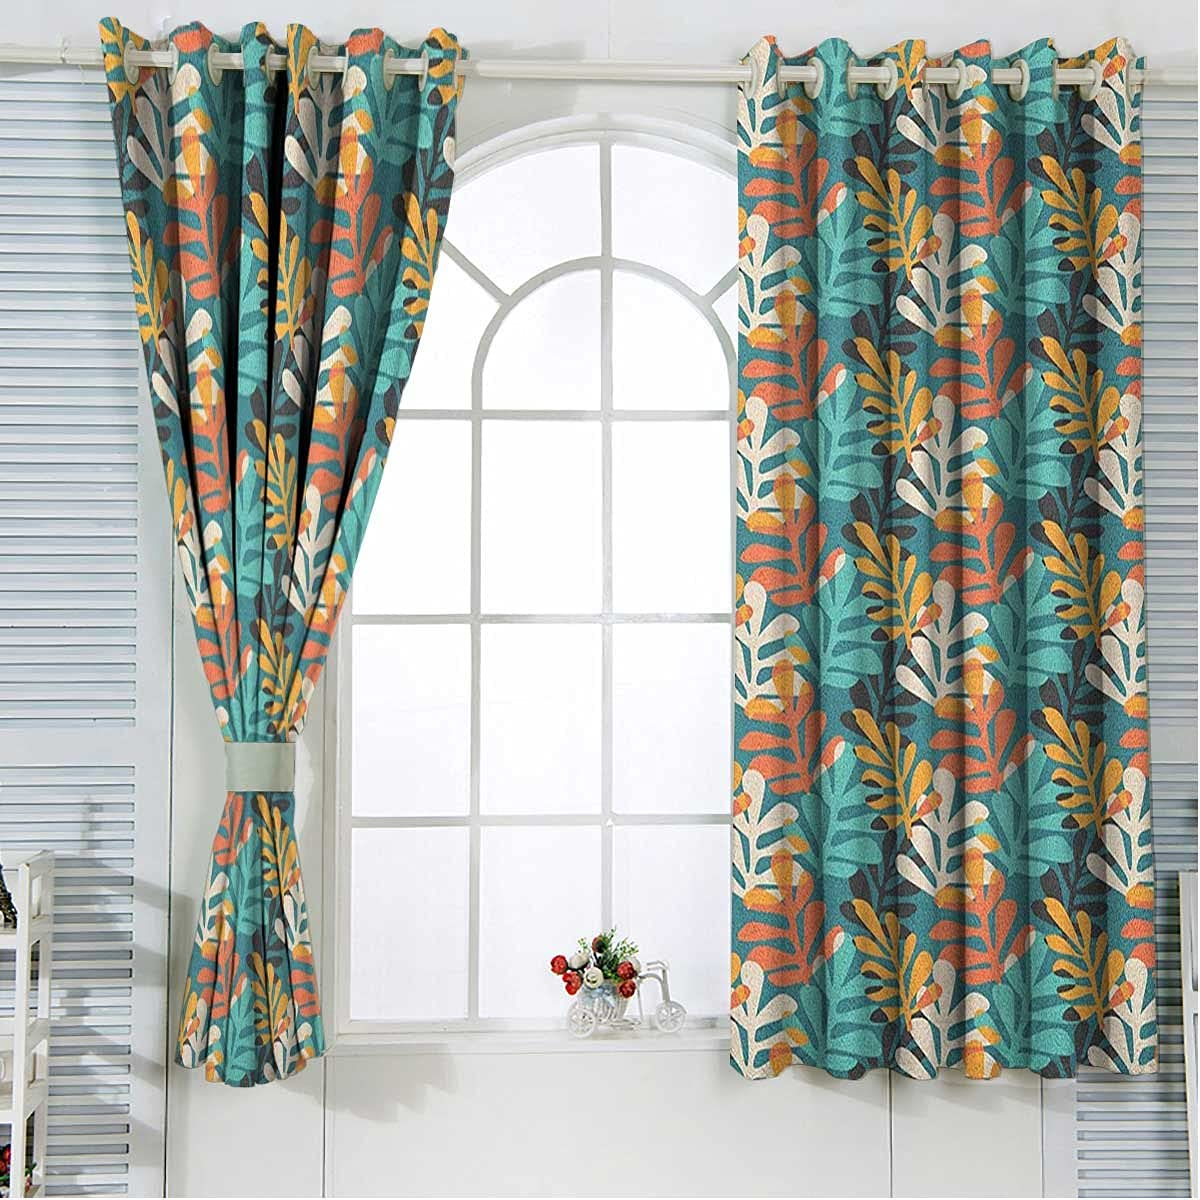 Pastel Room Max 72% OFF Choice Darkening Curtains 72 Inches Length Grom Multicolor